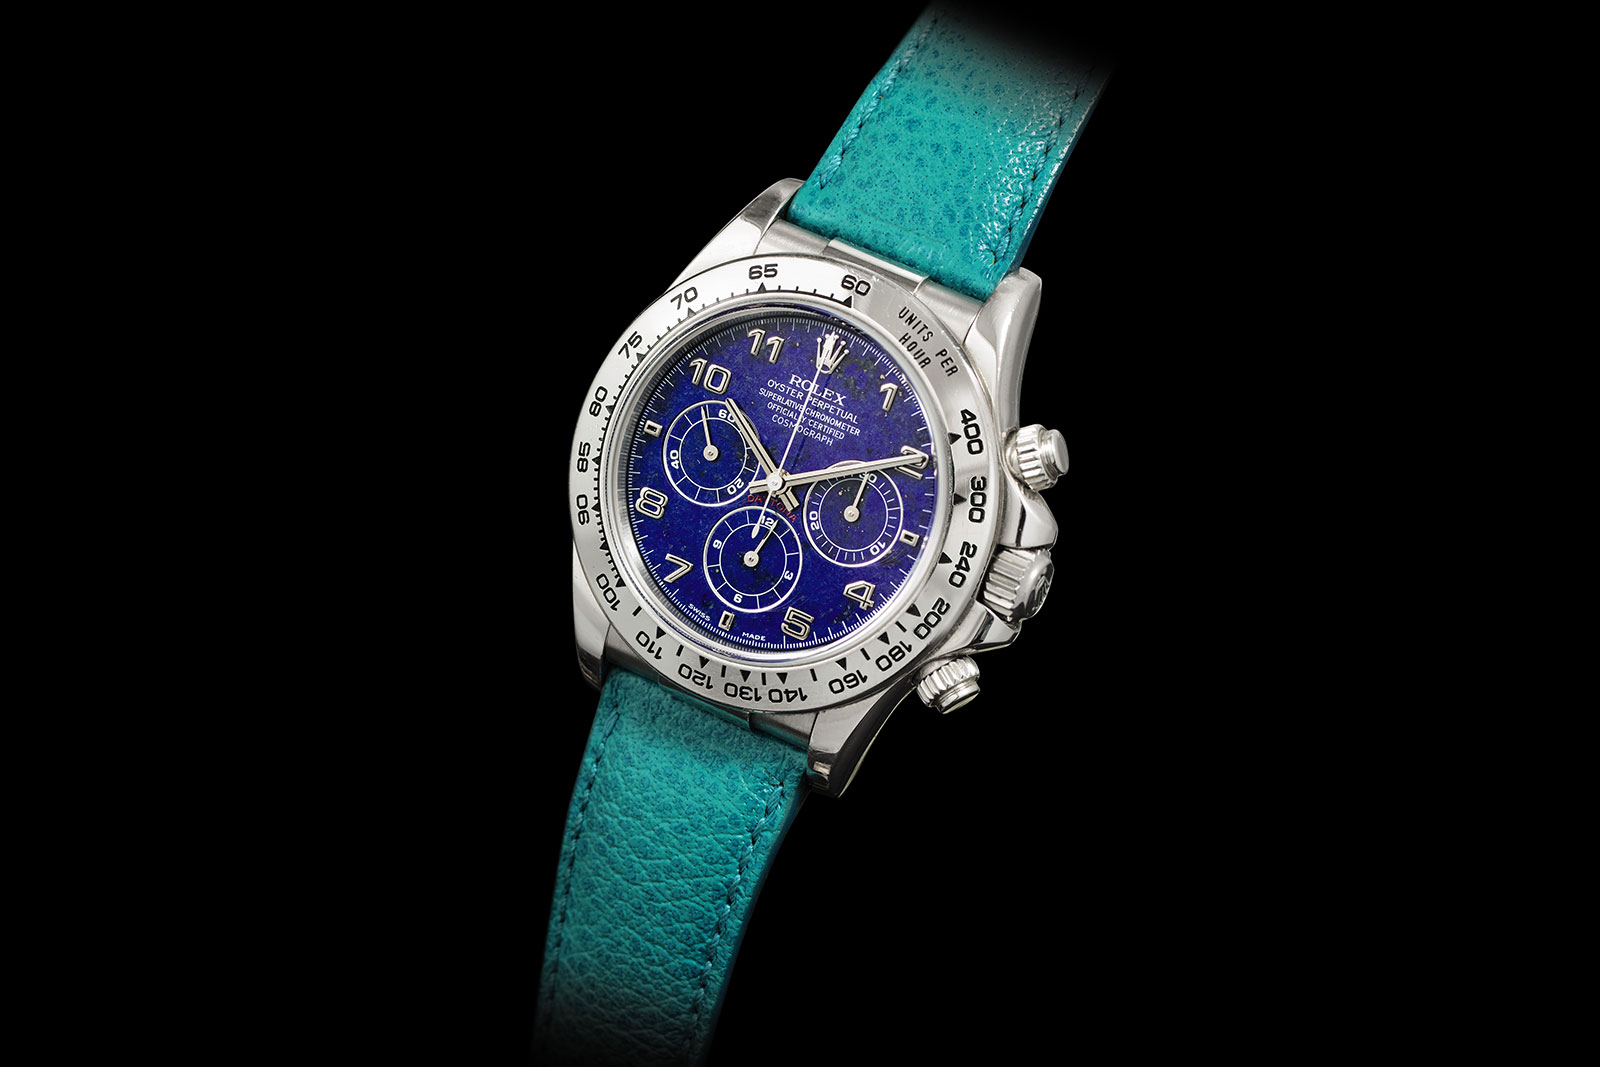 Vintage Watches by DaleVito - cover